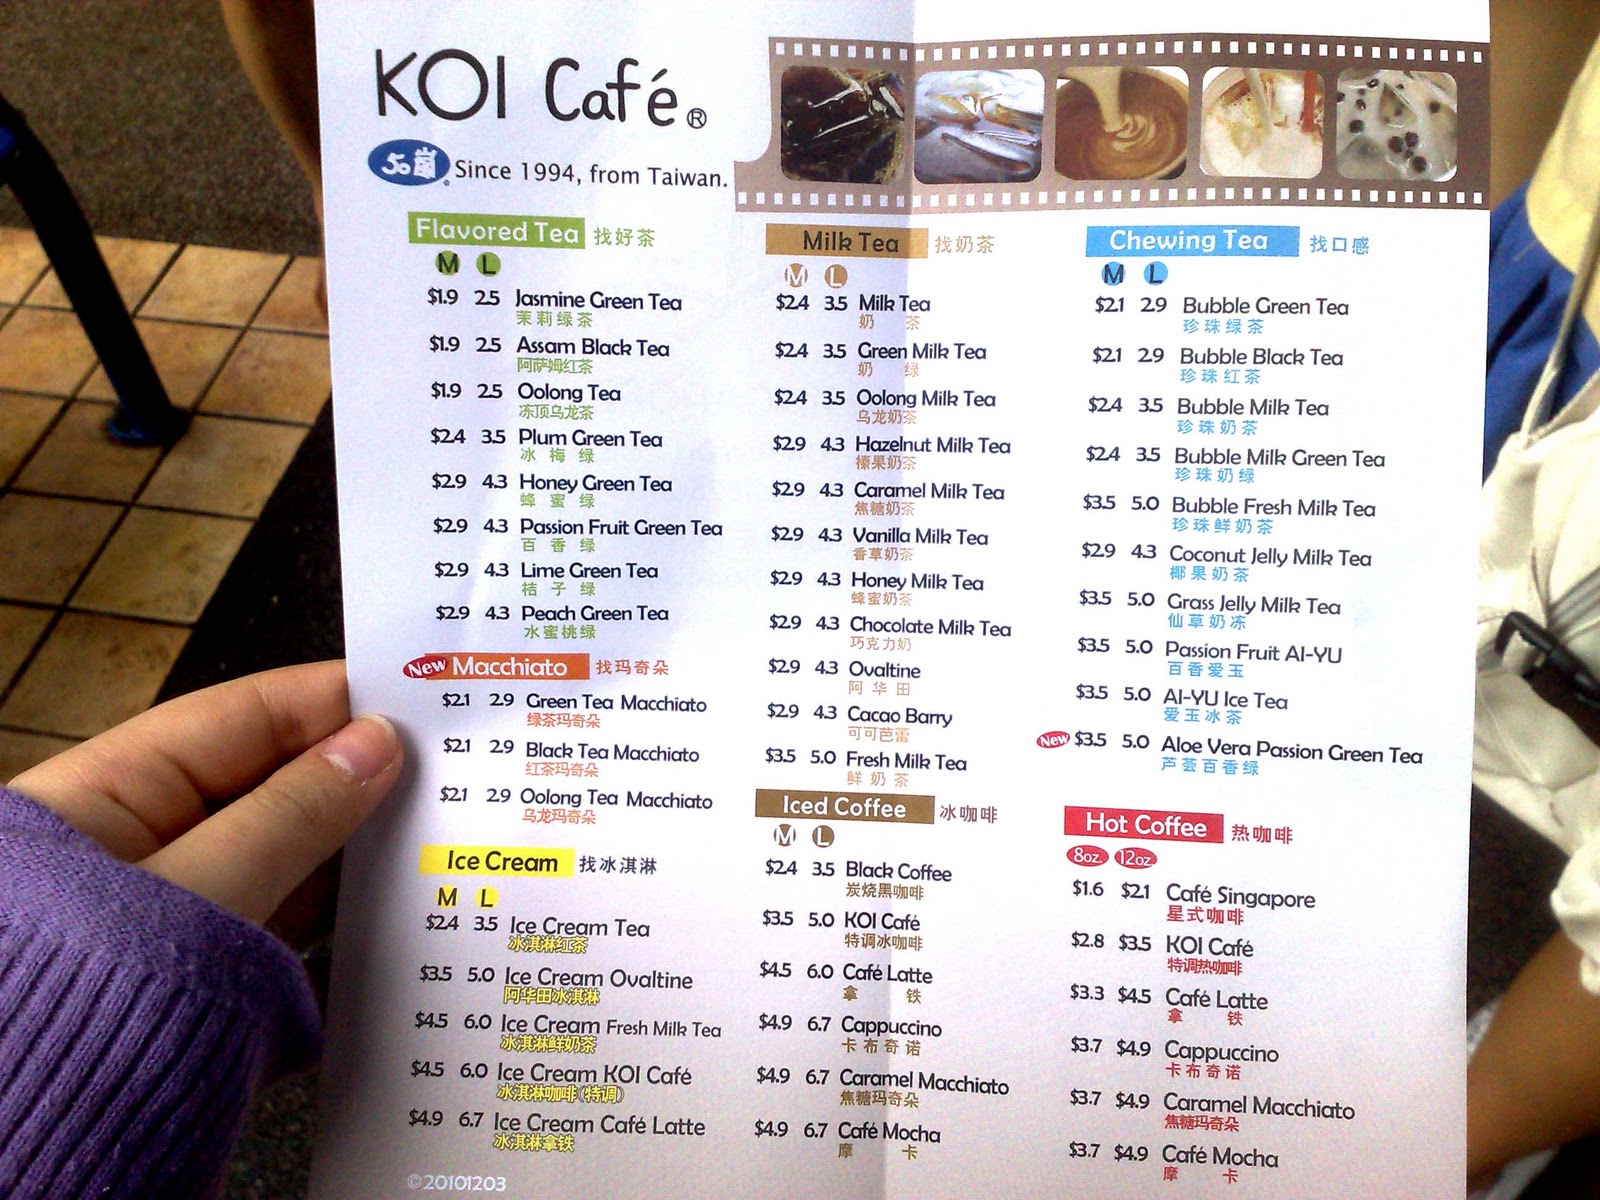 Xo Cafe Menu